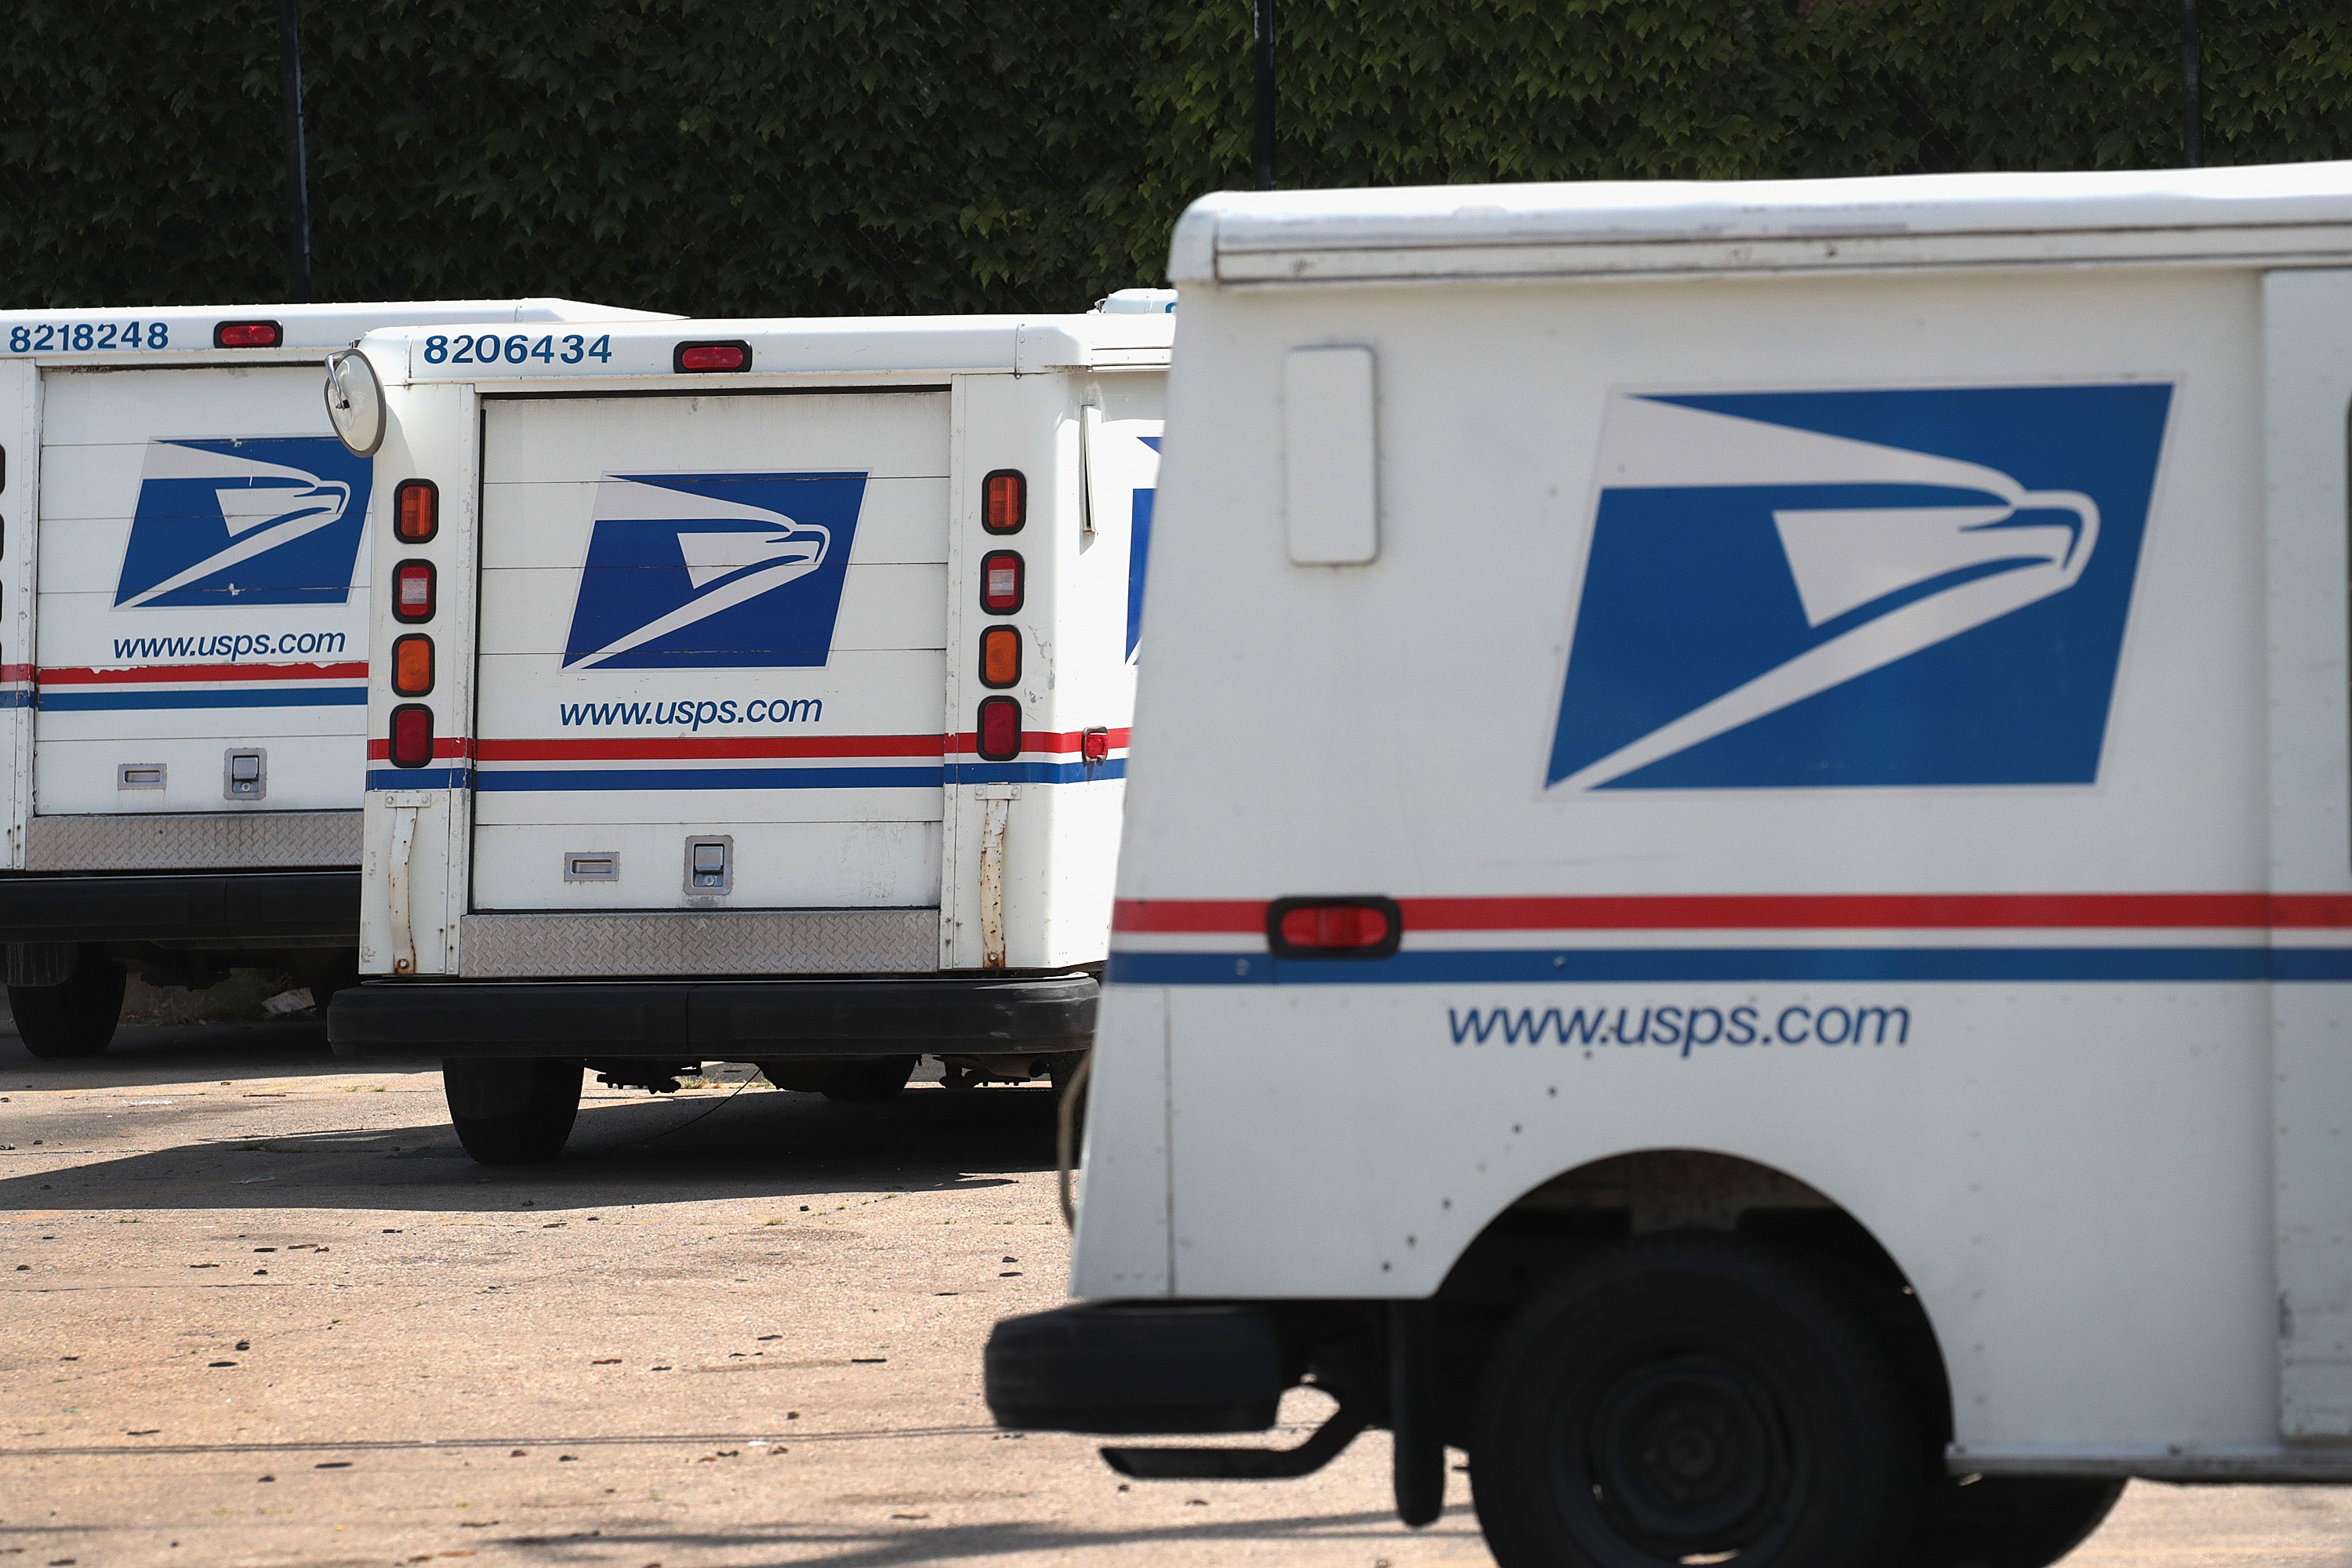 House Oversight chair introduces new bill to reverse organizational changes at USPS